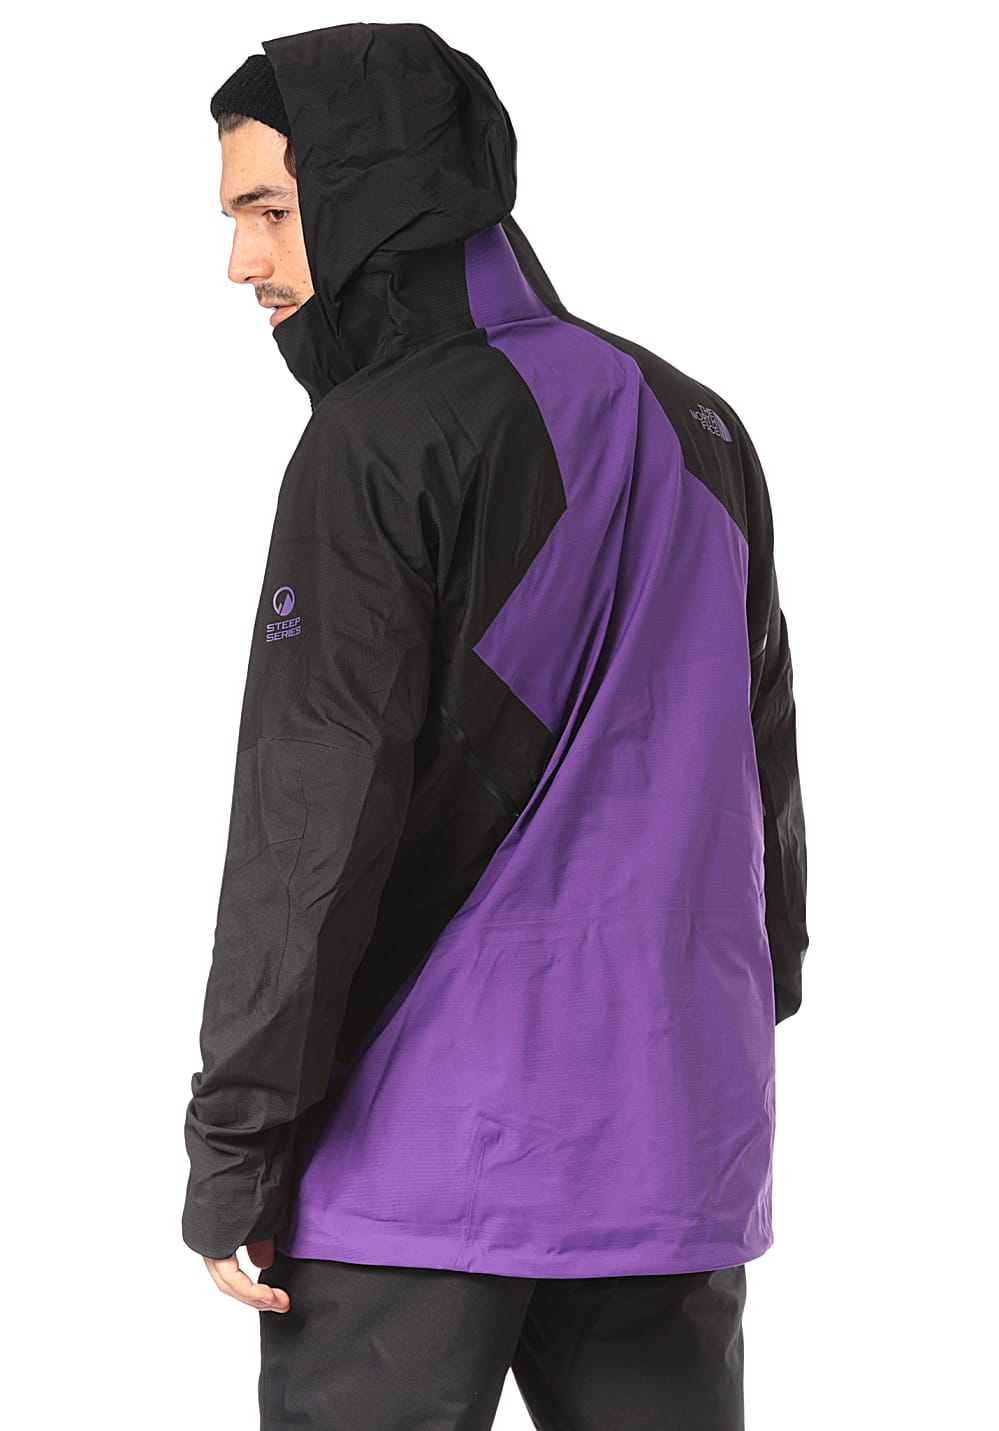 cb6ec0161590 THE NORTH FACE Purist - Snowboard Jacket for Men - Purple - Planet ...